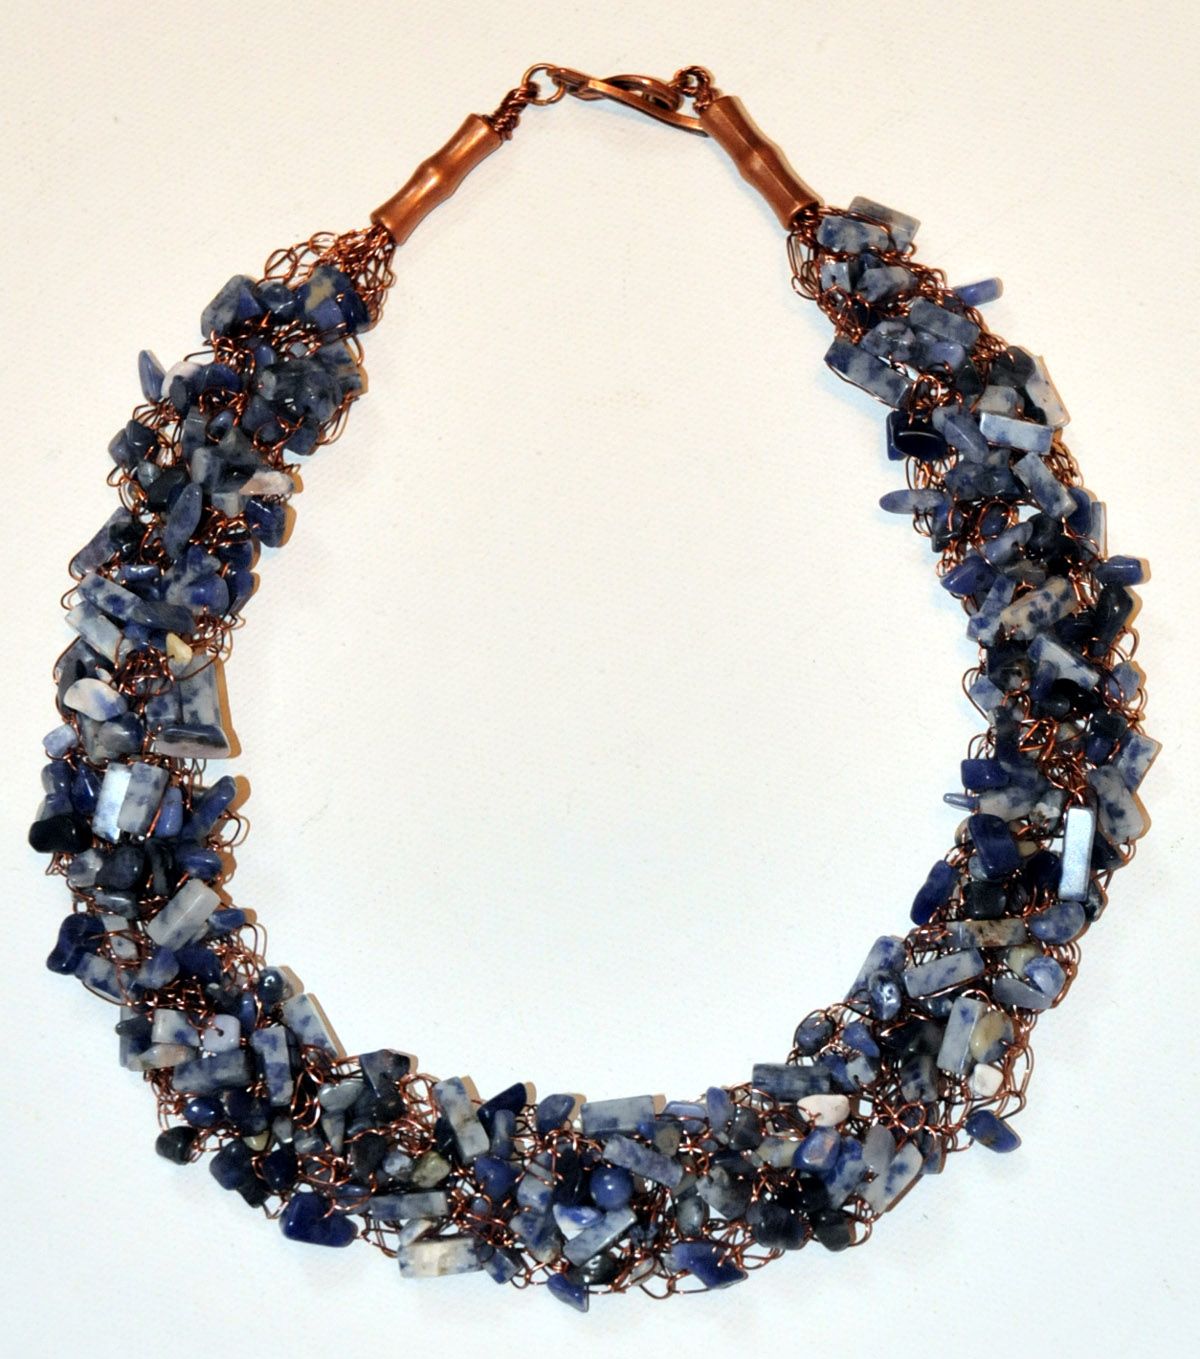 Wire Wrapped Lazurite Crystal Necklace with Sodalite Beads